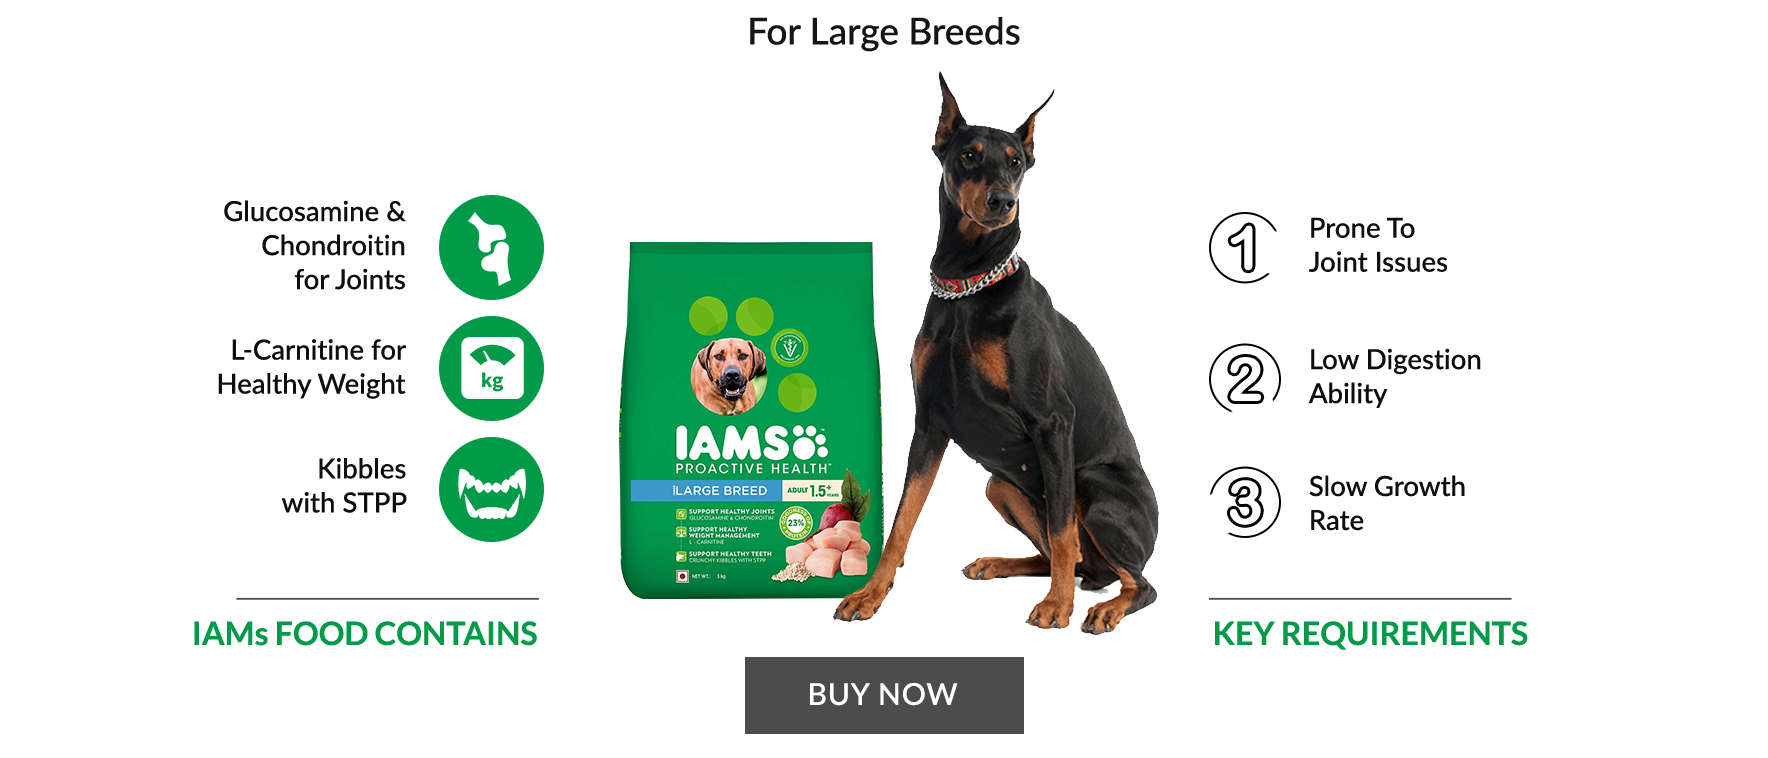 For Large breeds